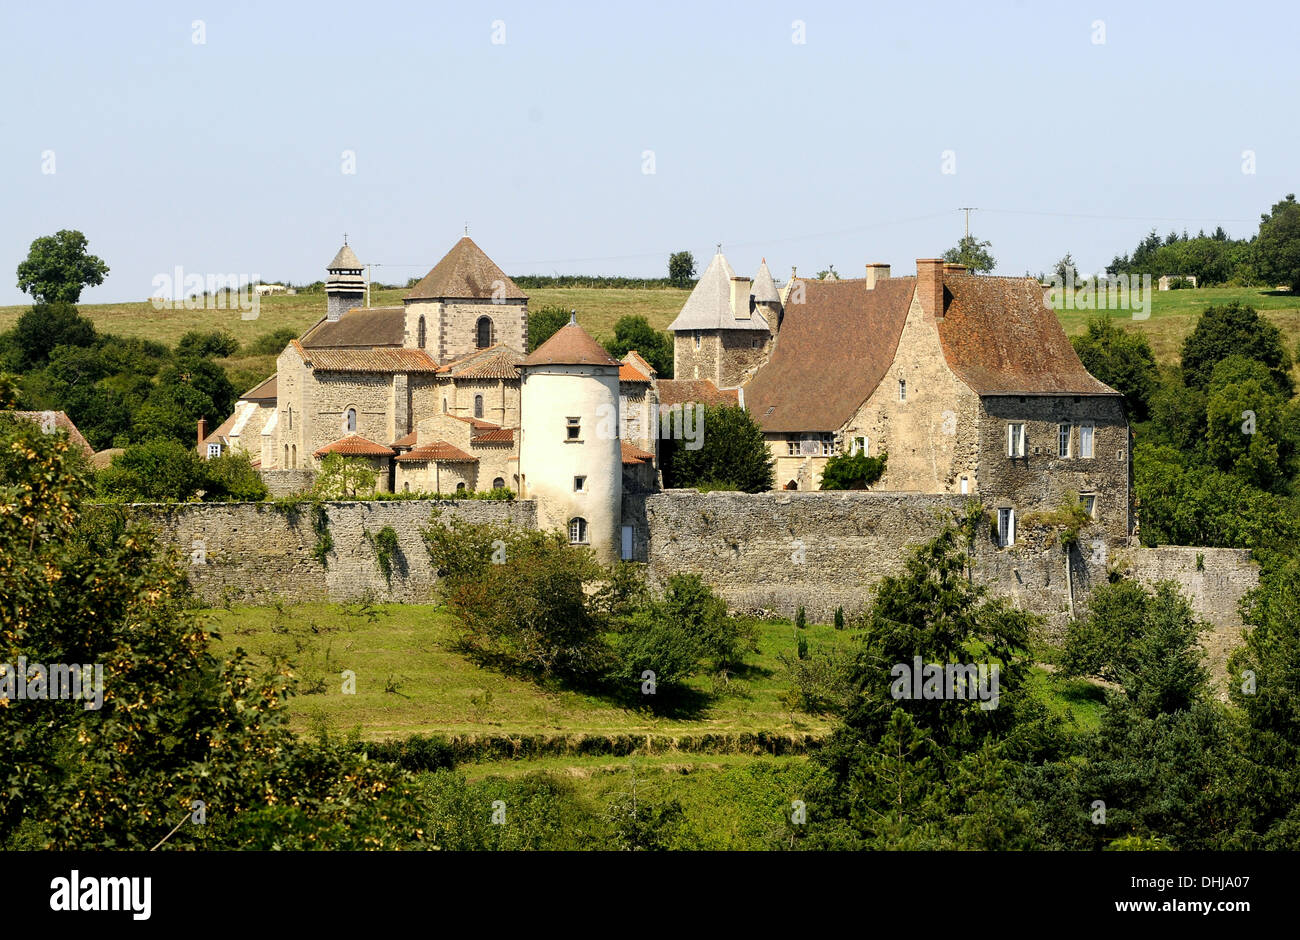 Abbey of Chantelle, valley of Sioule, Bourbonnais, Auvergne, France, Europe Stock Photo